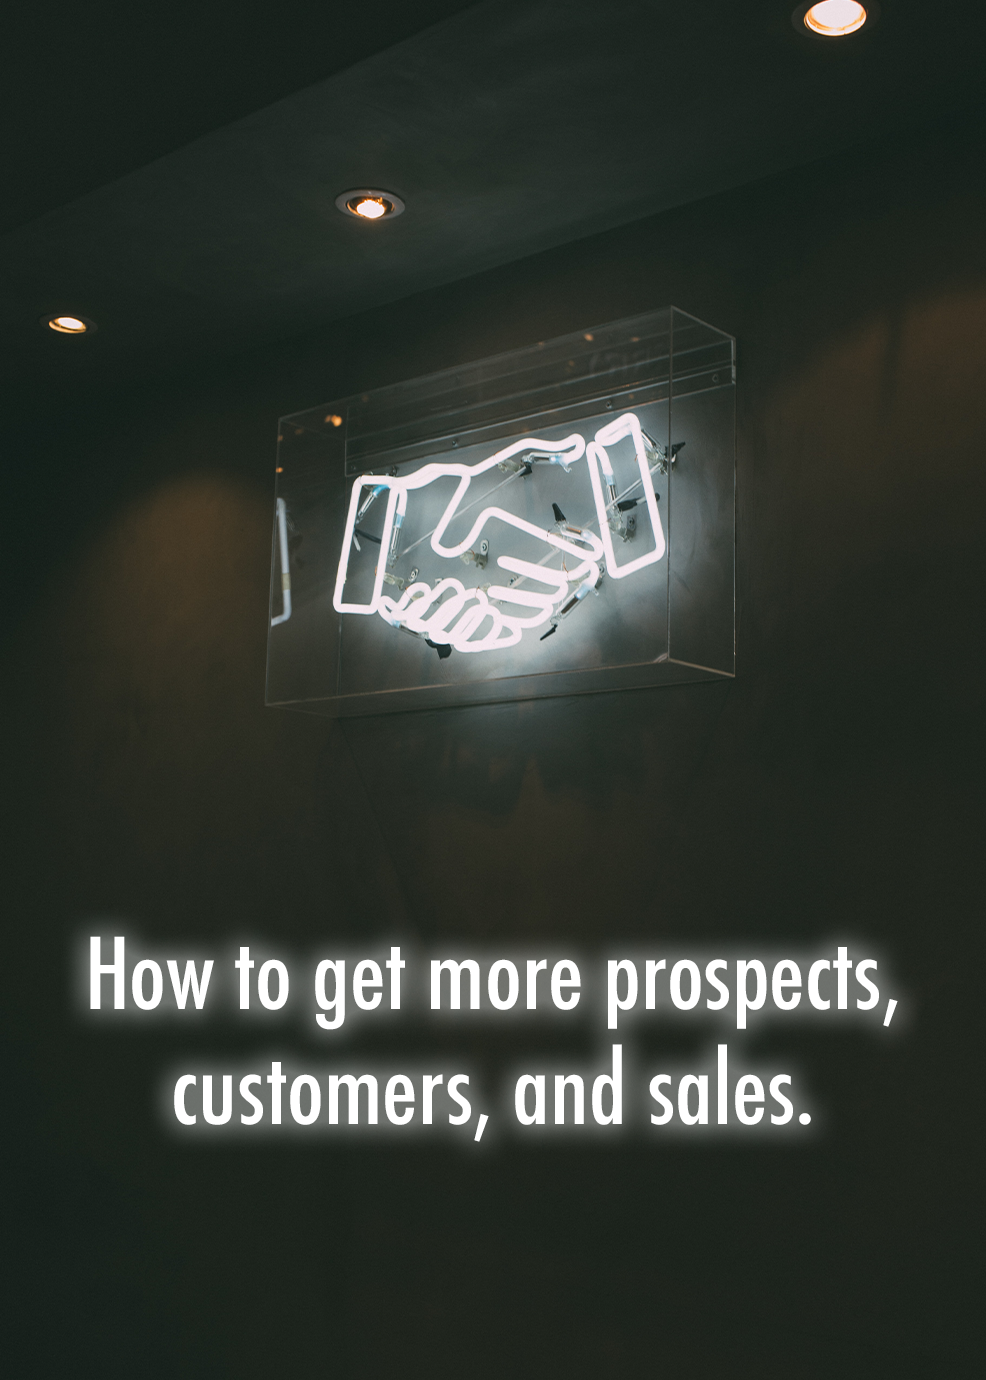 How to Get More Prospects, Customers, and Sales